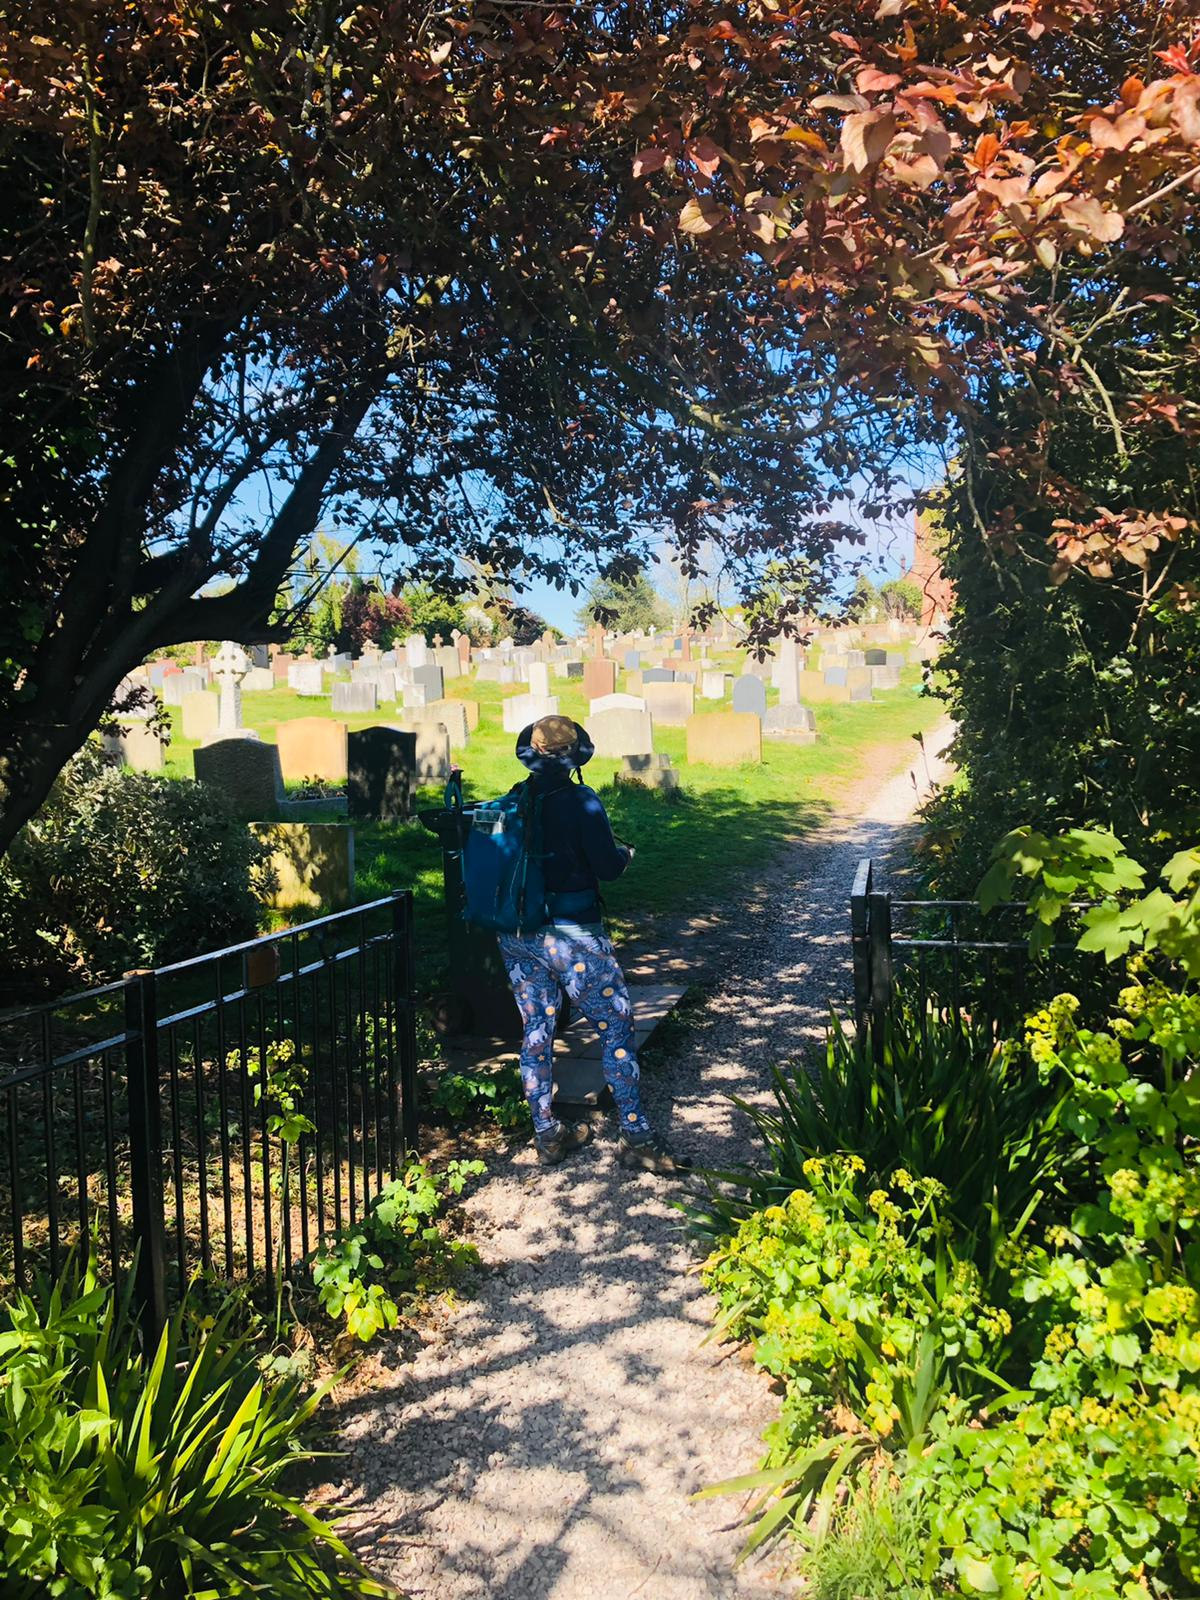 Ellen stands in the shade of an arch of trees. She is looking across a sunlit graveyard